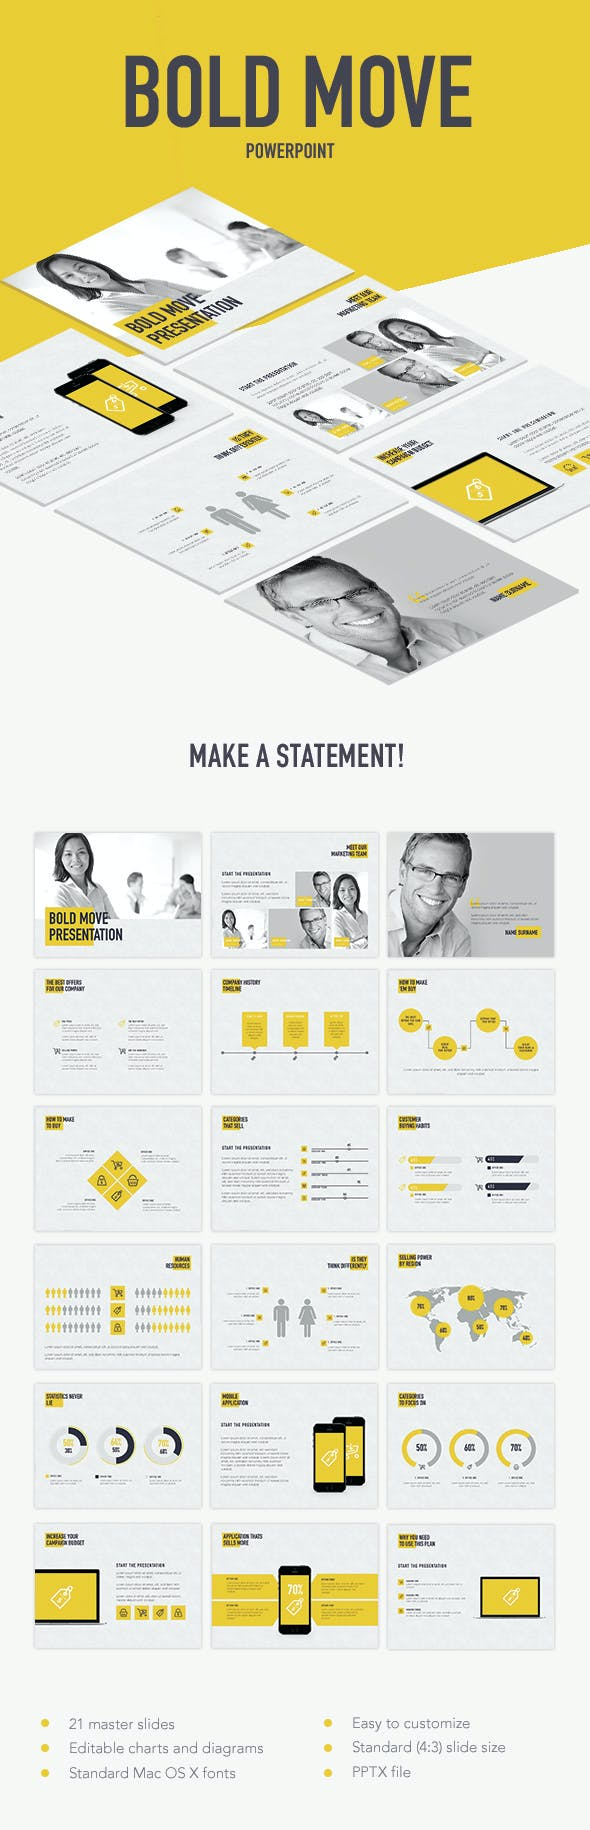 bold move powerpoint template by jumsoft graphicriver